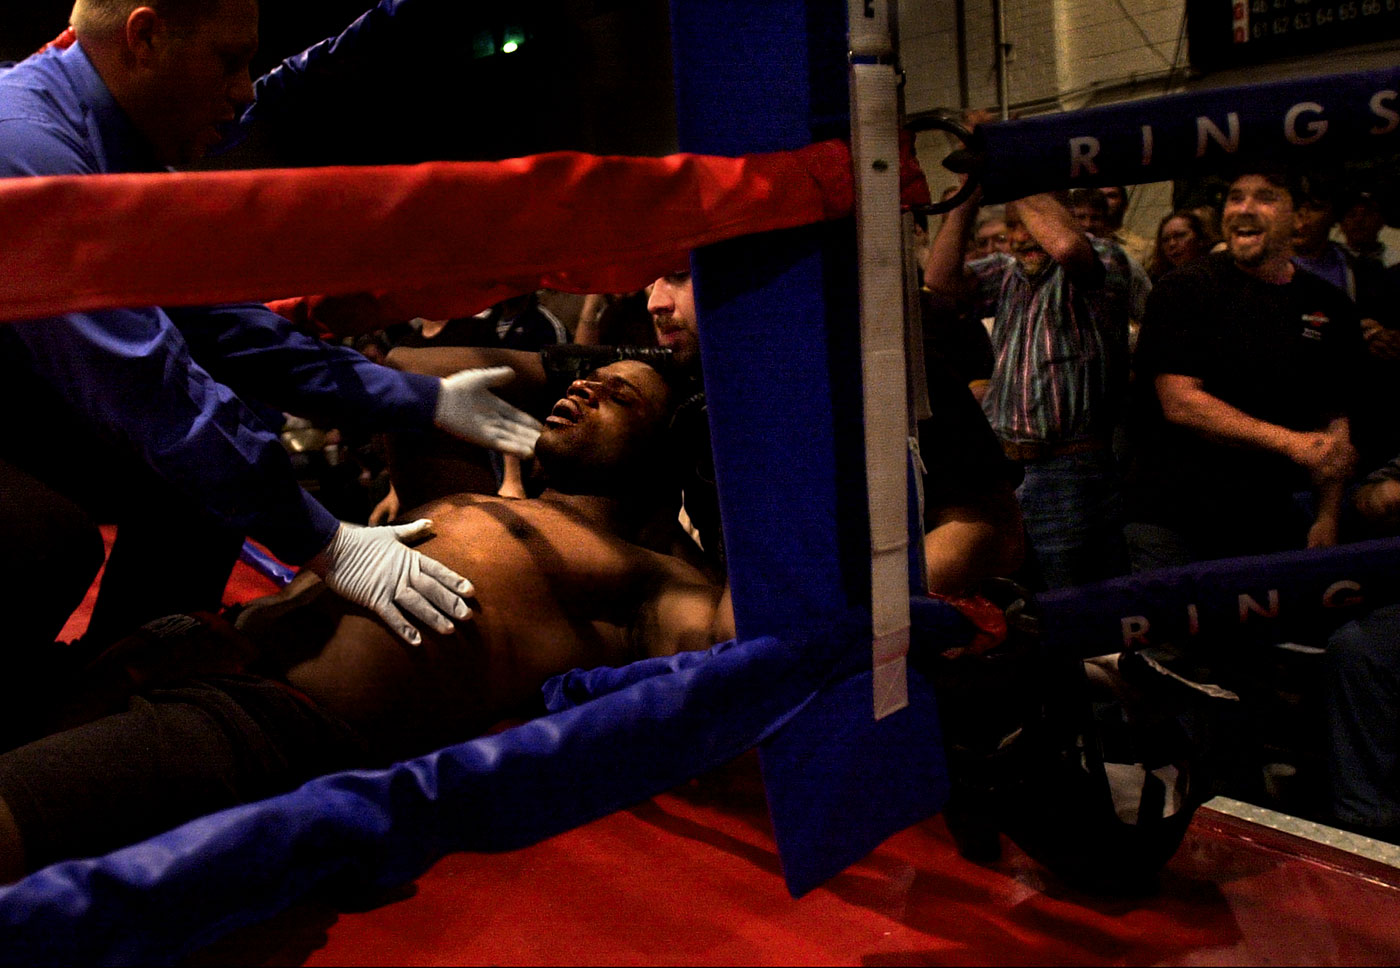 Fans react after Vincent Coleman was knocked out during his fight. At left is the referee, Donnie Jessup.